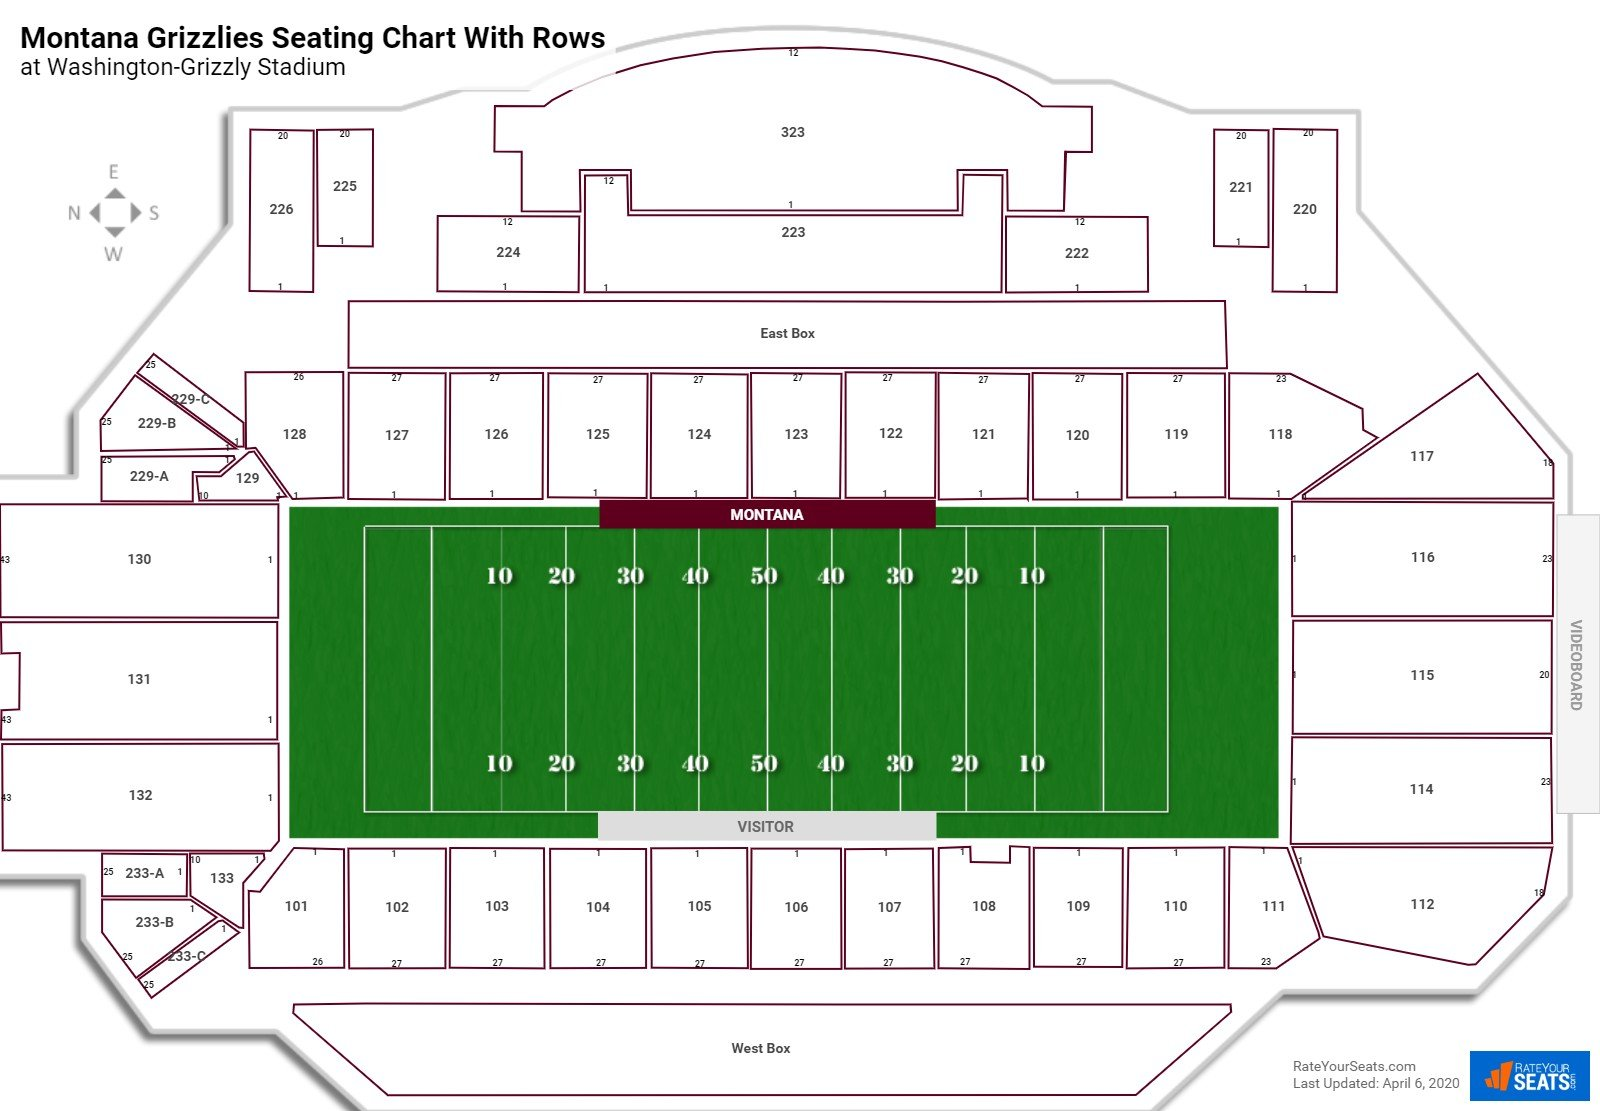 Washington-Grizzly Stadium seating chart with rows